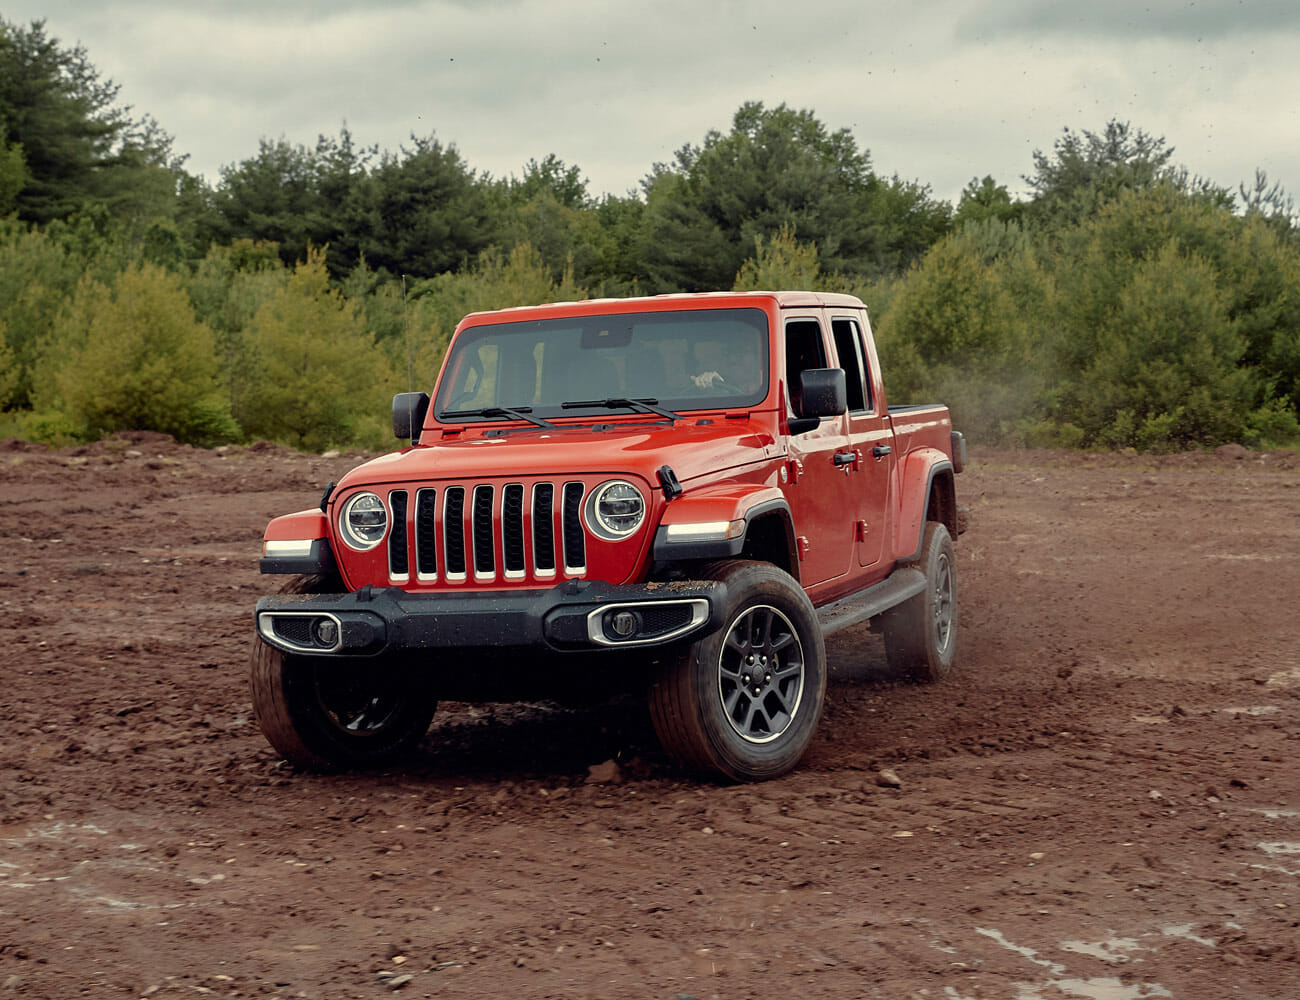 2020 Jeep Gladiator Review: A Truck for the People